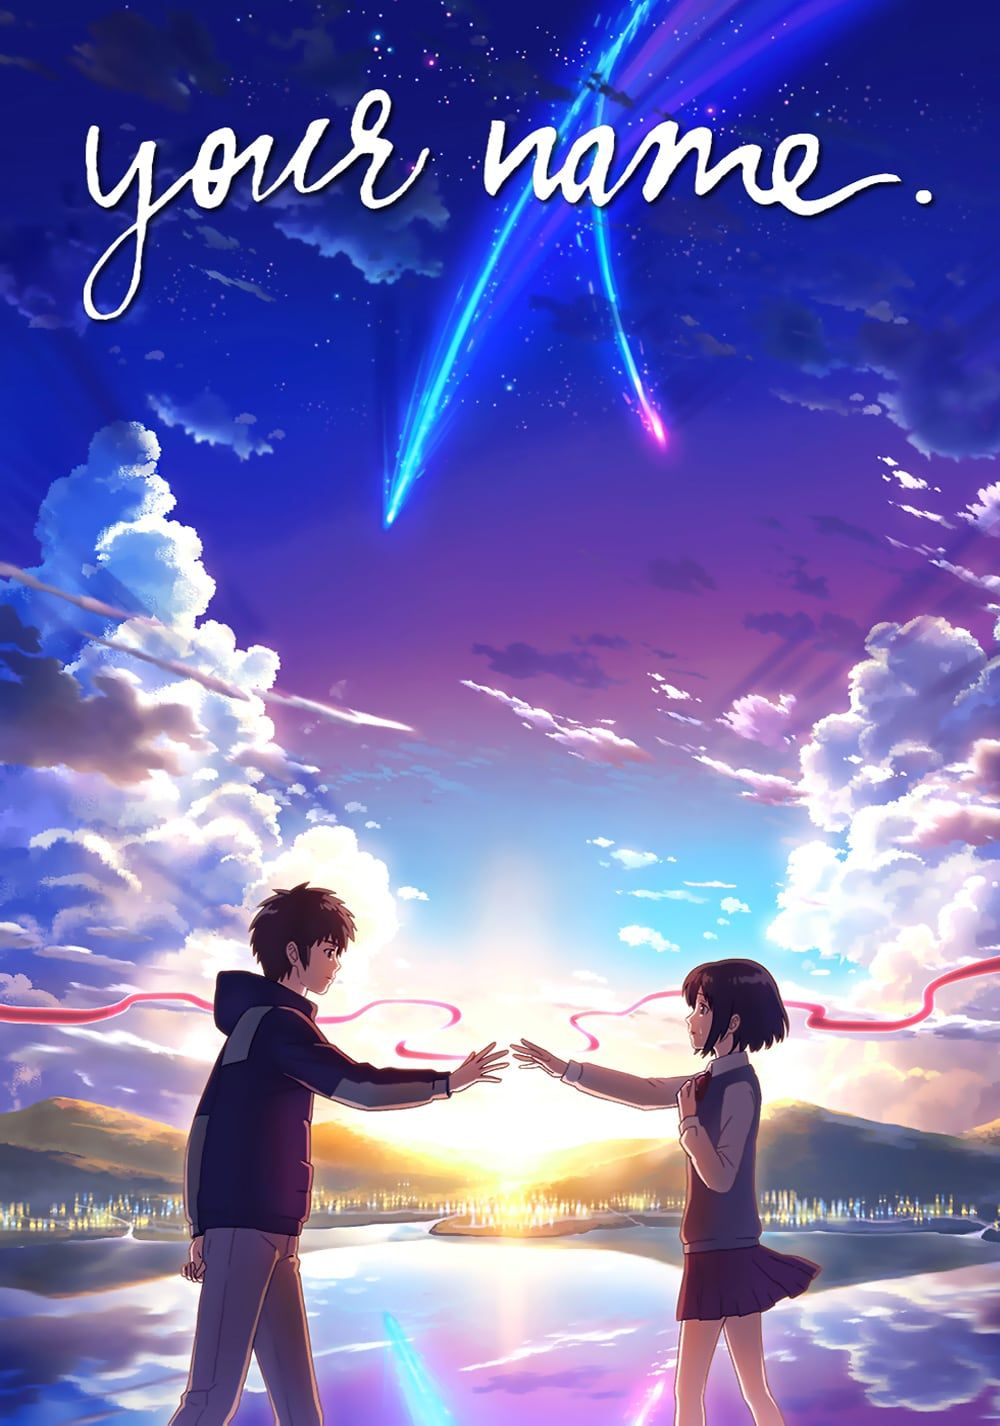 Pin by Udbhav verma on Movie Posters Your name anime